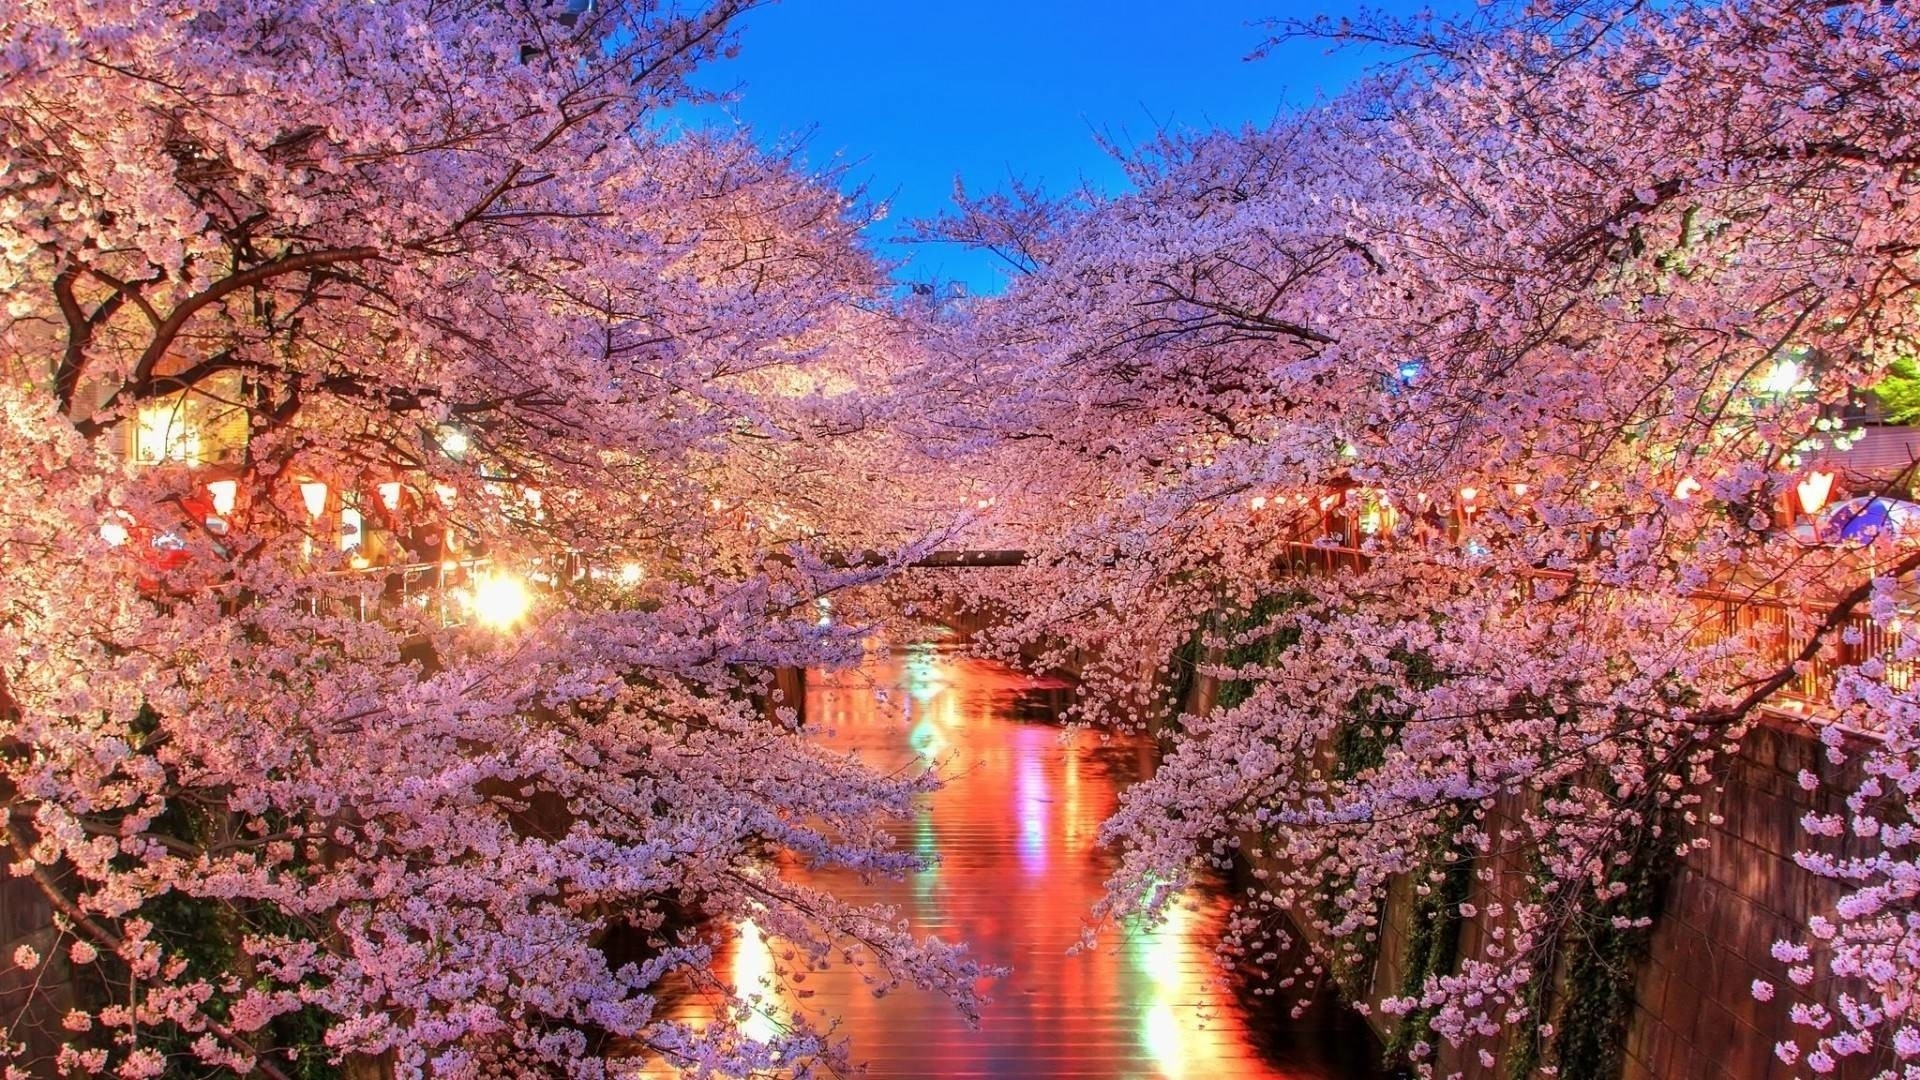 cherry blossom hd wallpaper (71+ images)